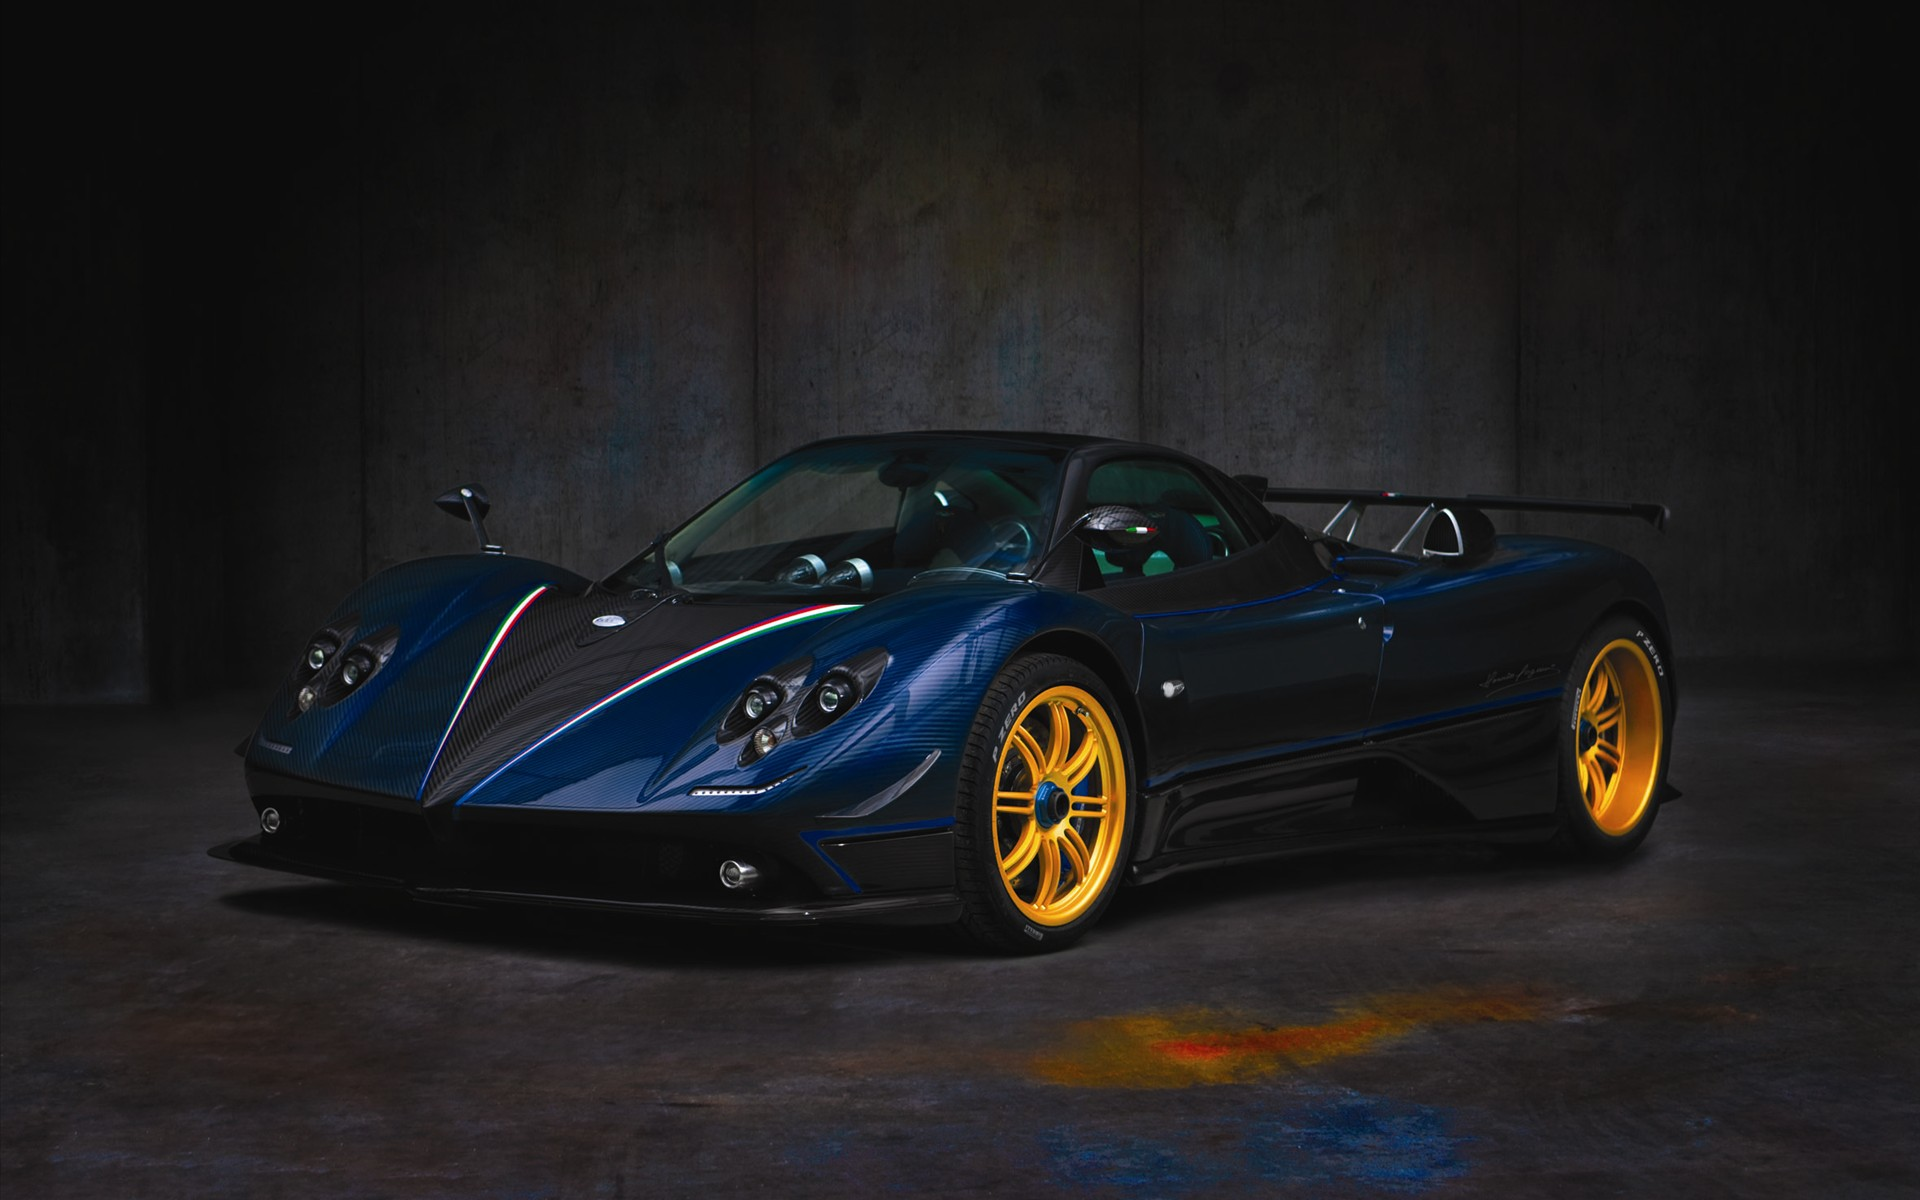 Pagani Zonda Wallpapers and Background Images   stmednet 1920x1200